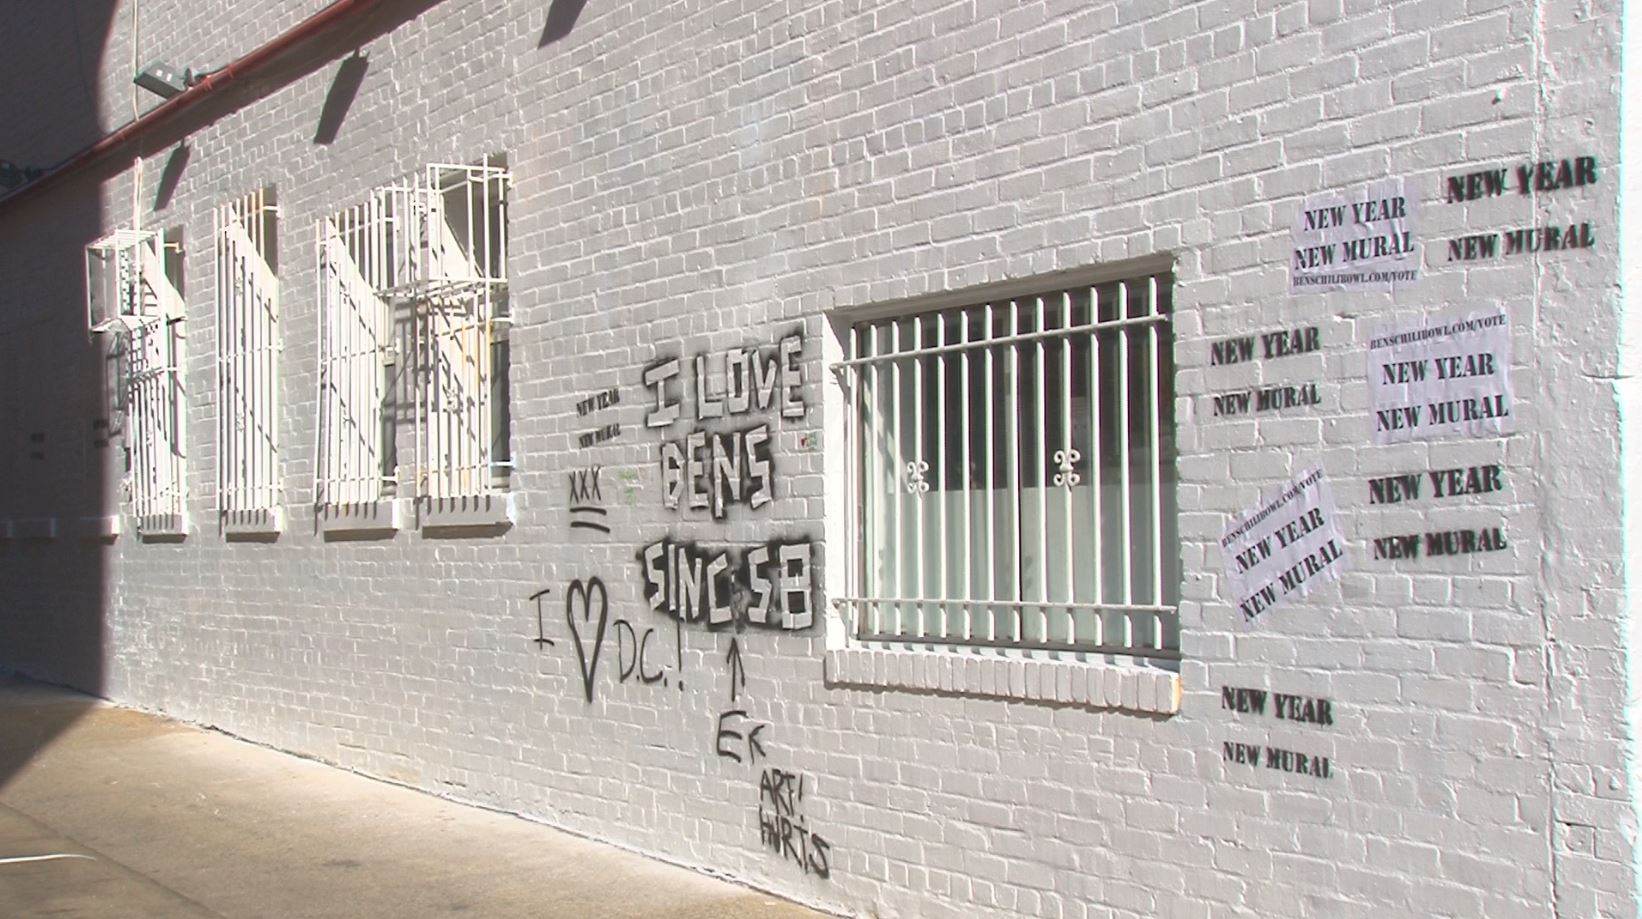 Ben 39 s chili bowl paints over bill cosby mural for Chuck brown mural